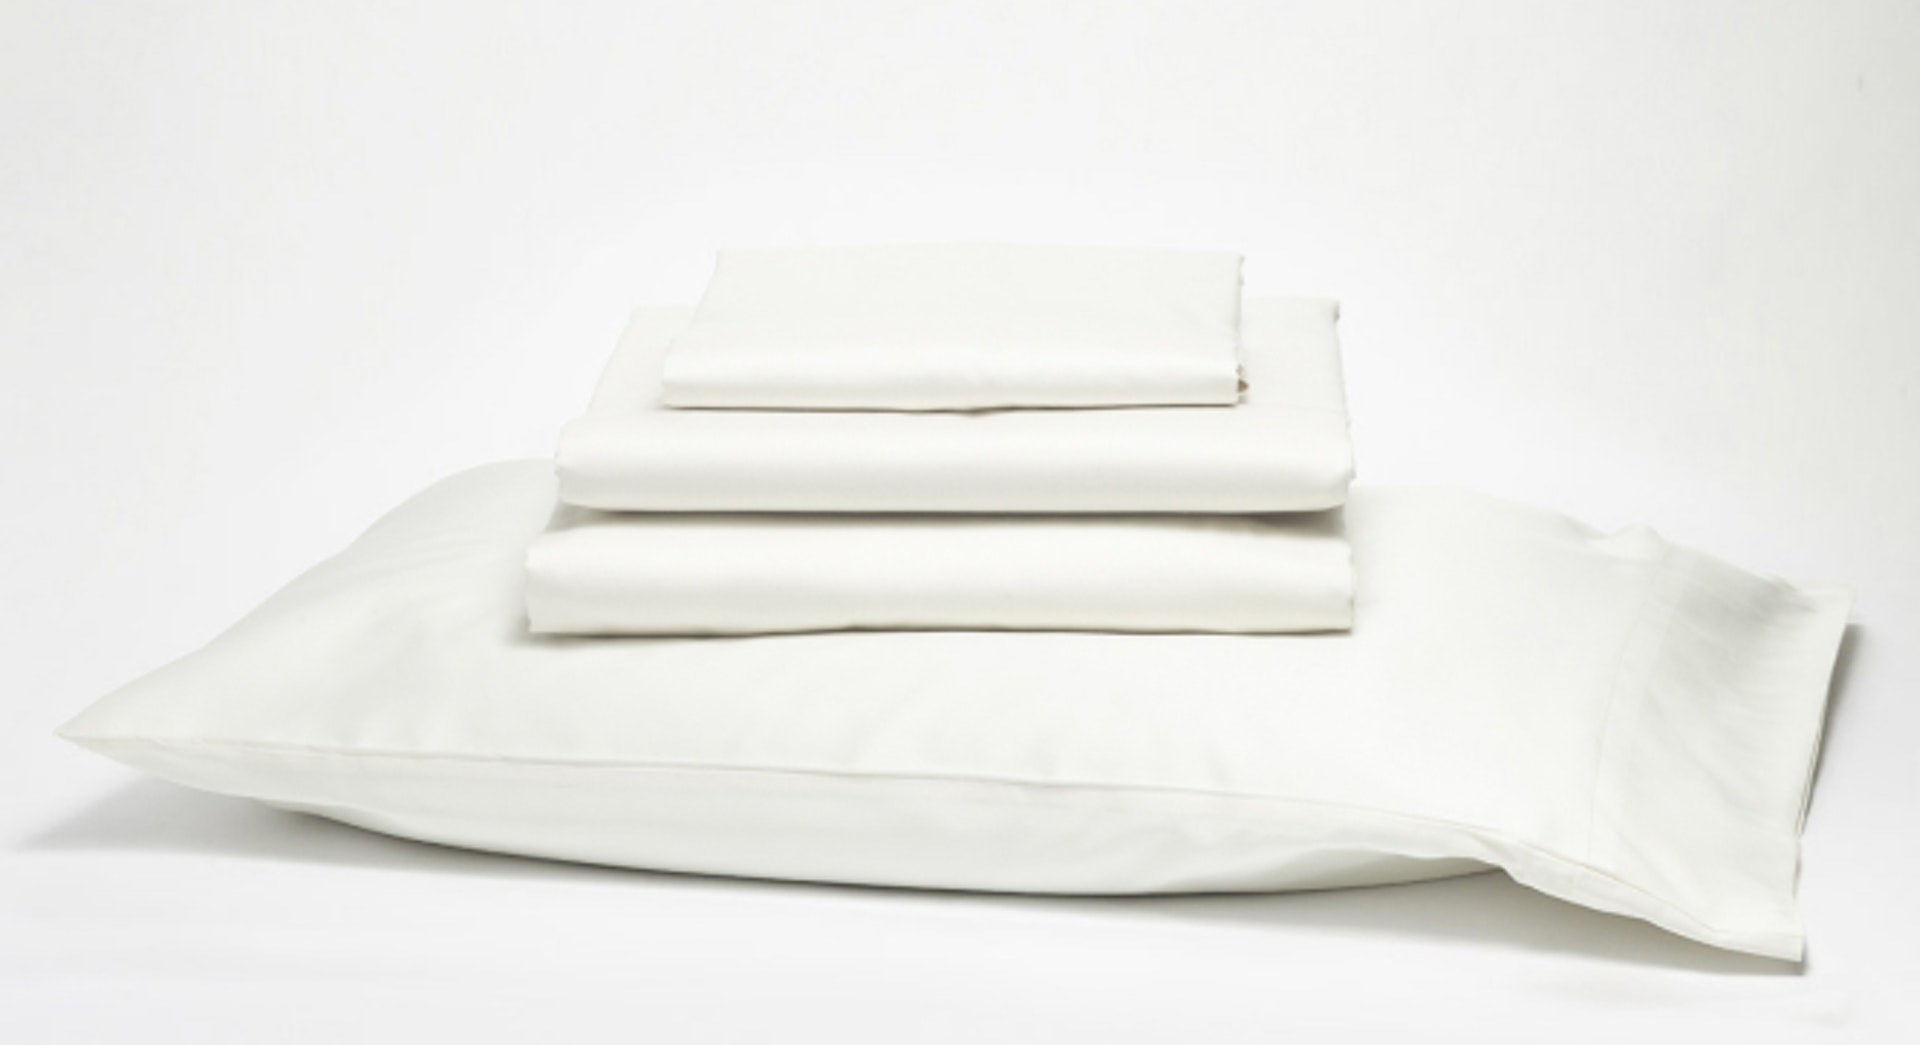 Pillow with white sheets stacked on top